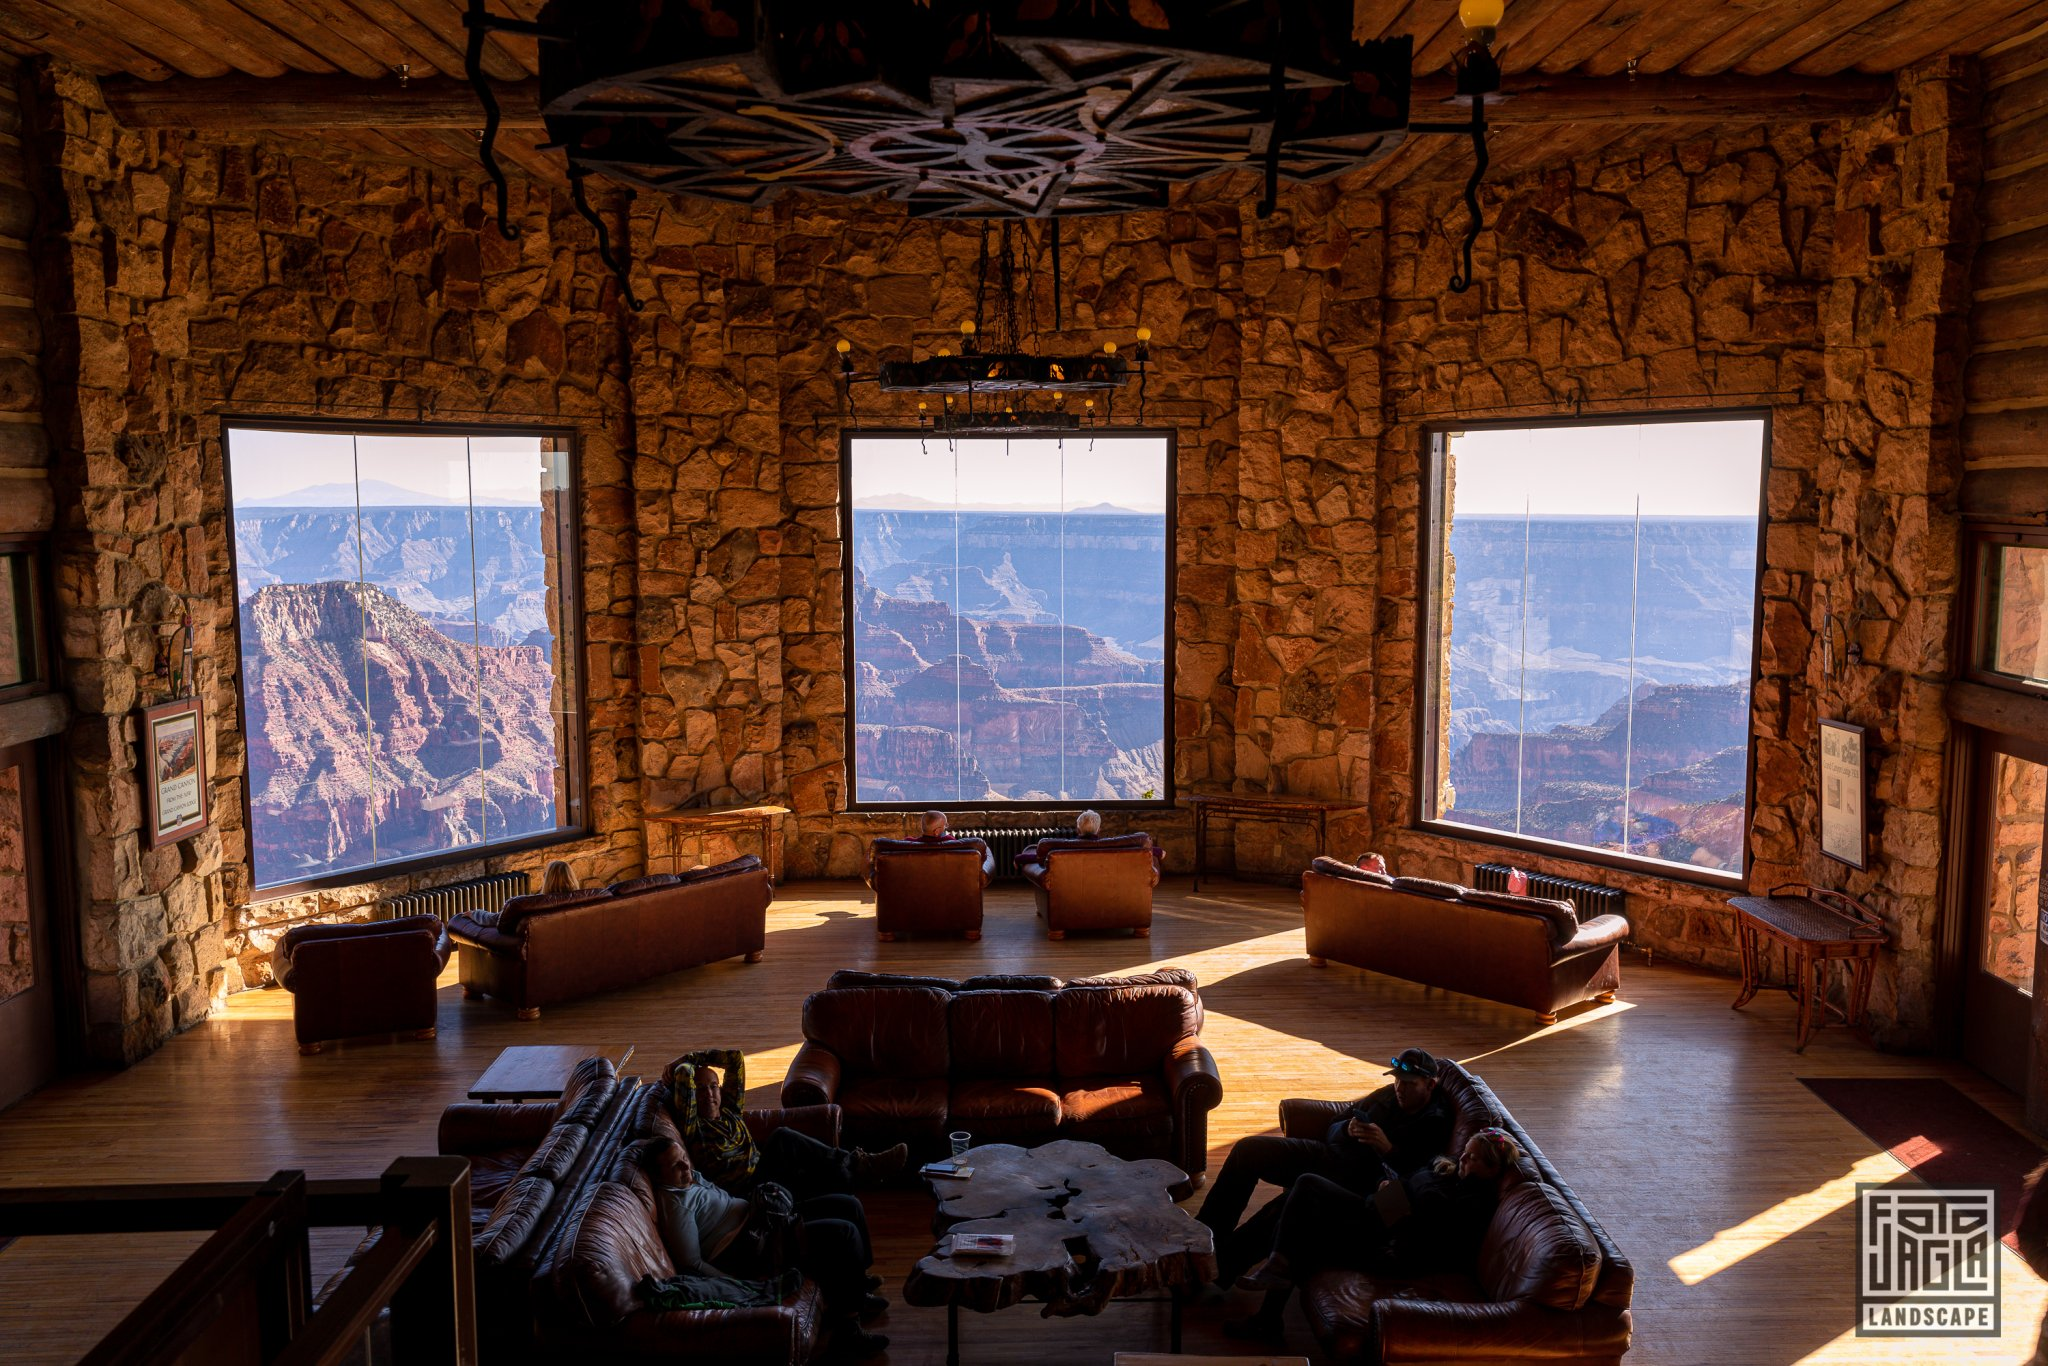 North Rim - Grand Canyon Lodge